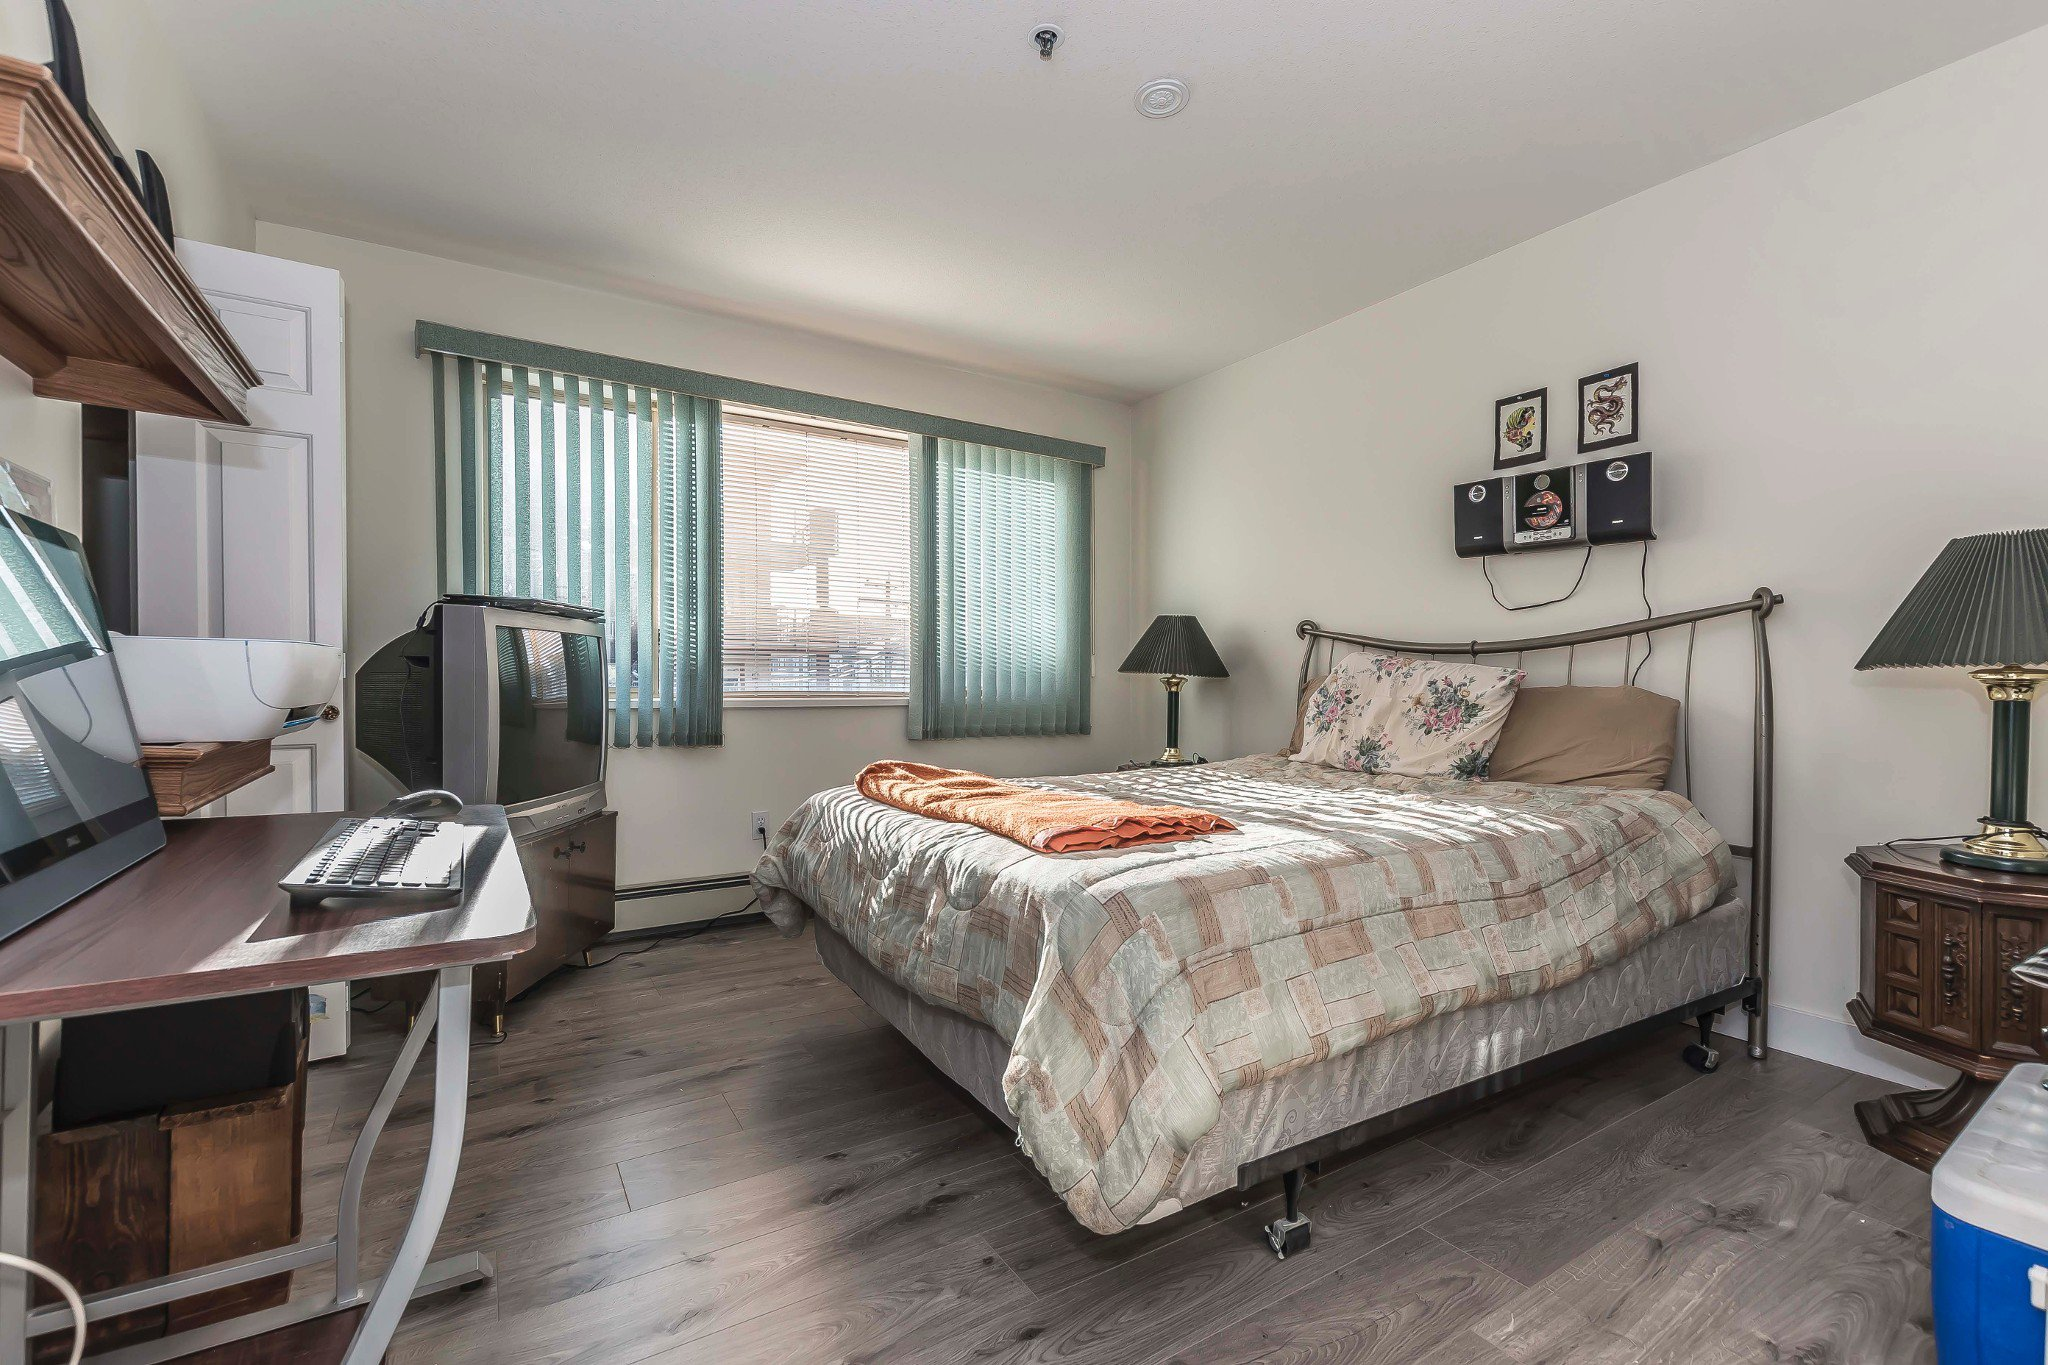 Photo 9: Photos: 305 9186 Edward Street in Chilliwack: Condo for sale : MLS®# R2218862